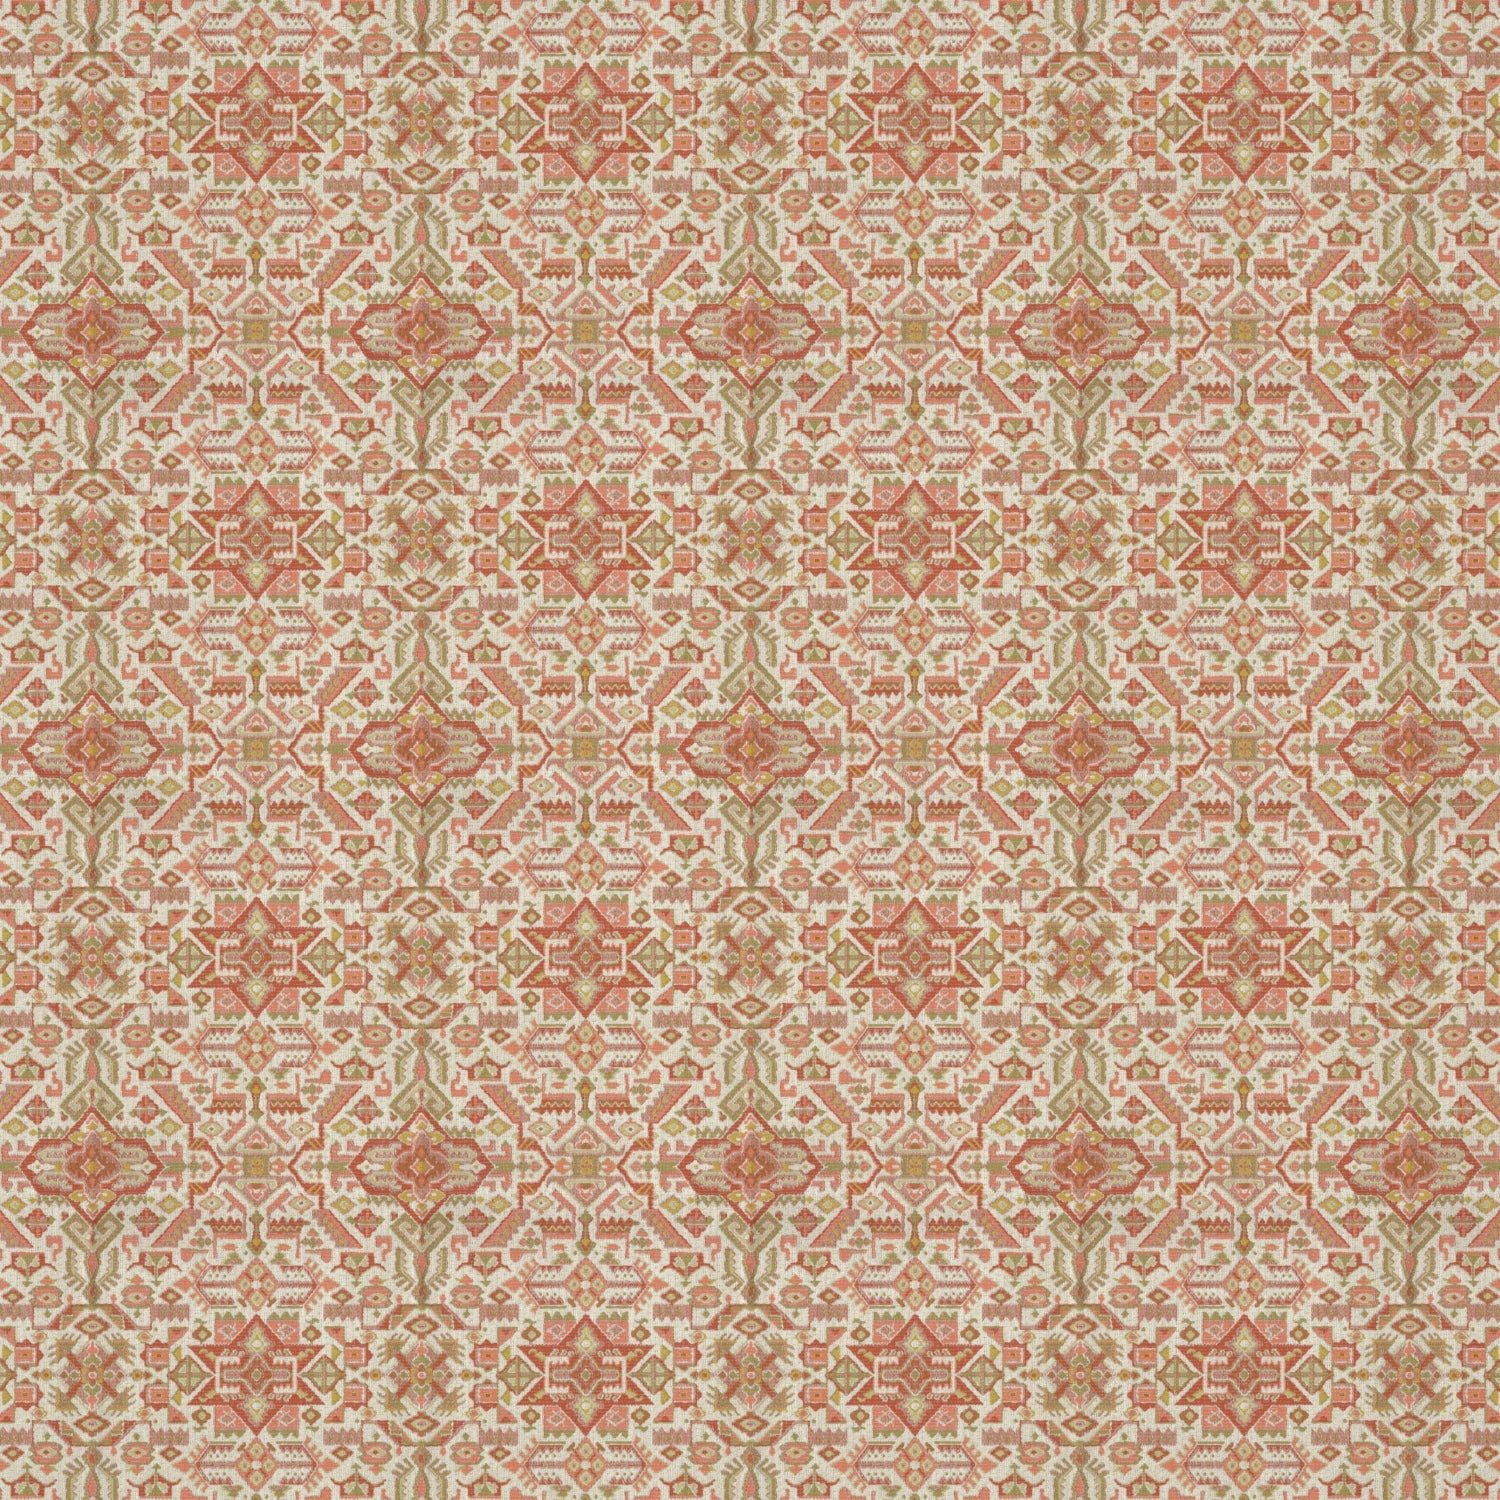 Fabric swatch of a orange and neutral coloured large scale geometric weave fabric suitable upholstery